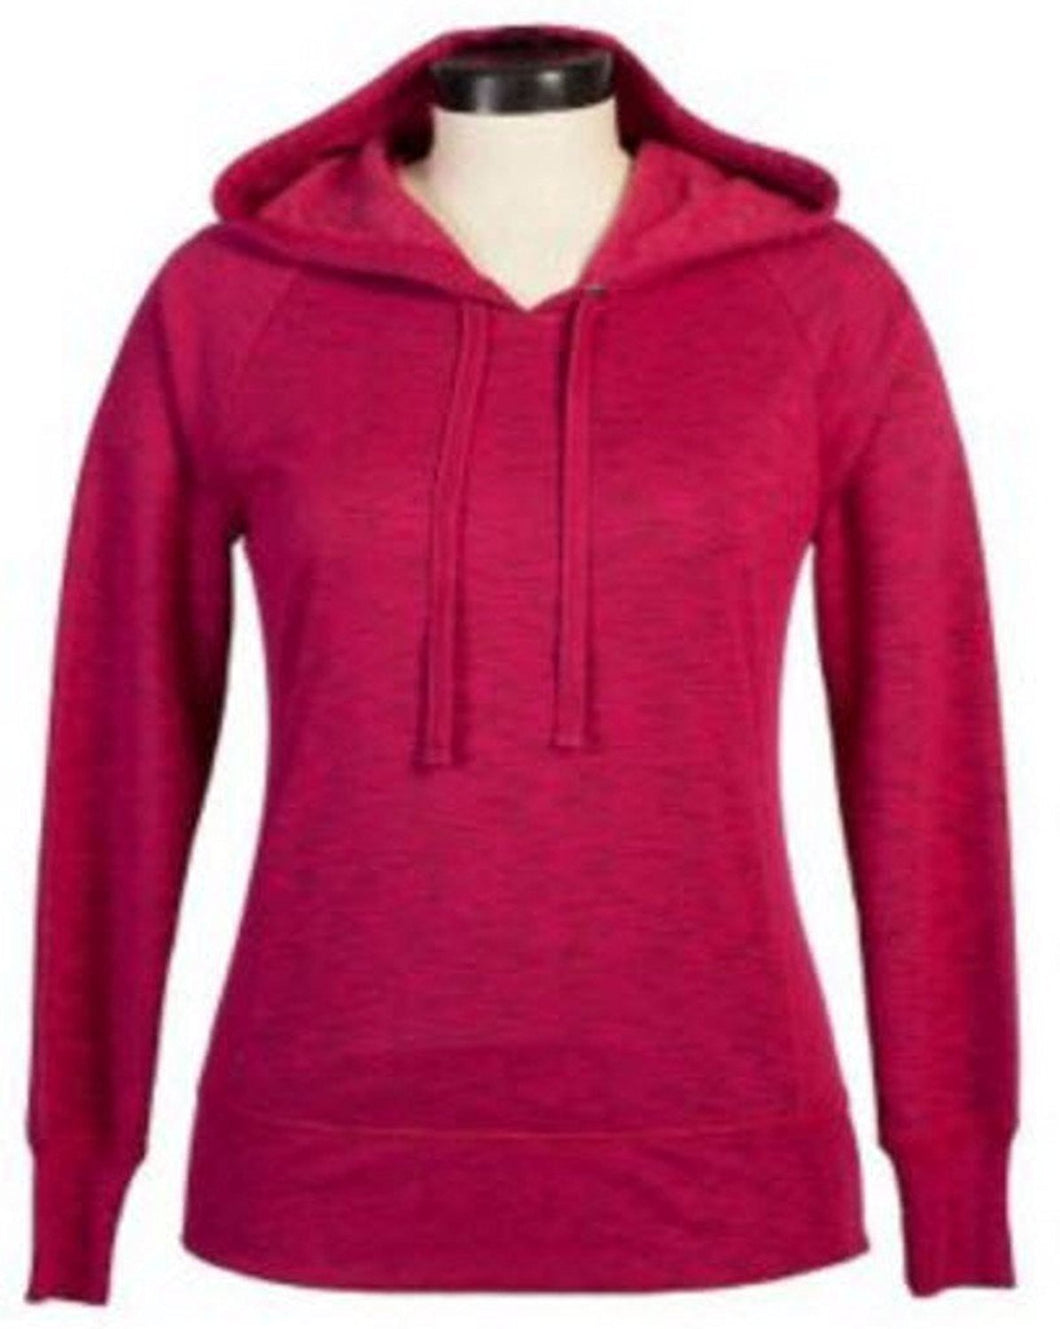 Green Tea Womens Size Small Pullover Hooded Sweater, Wine